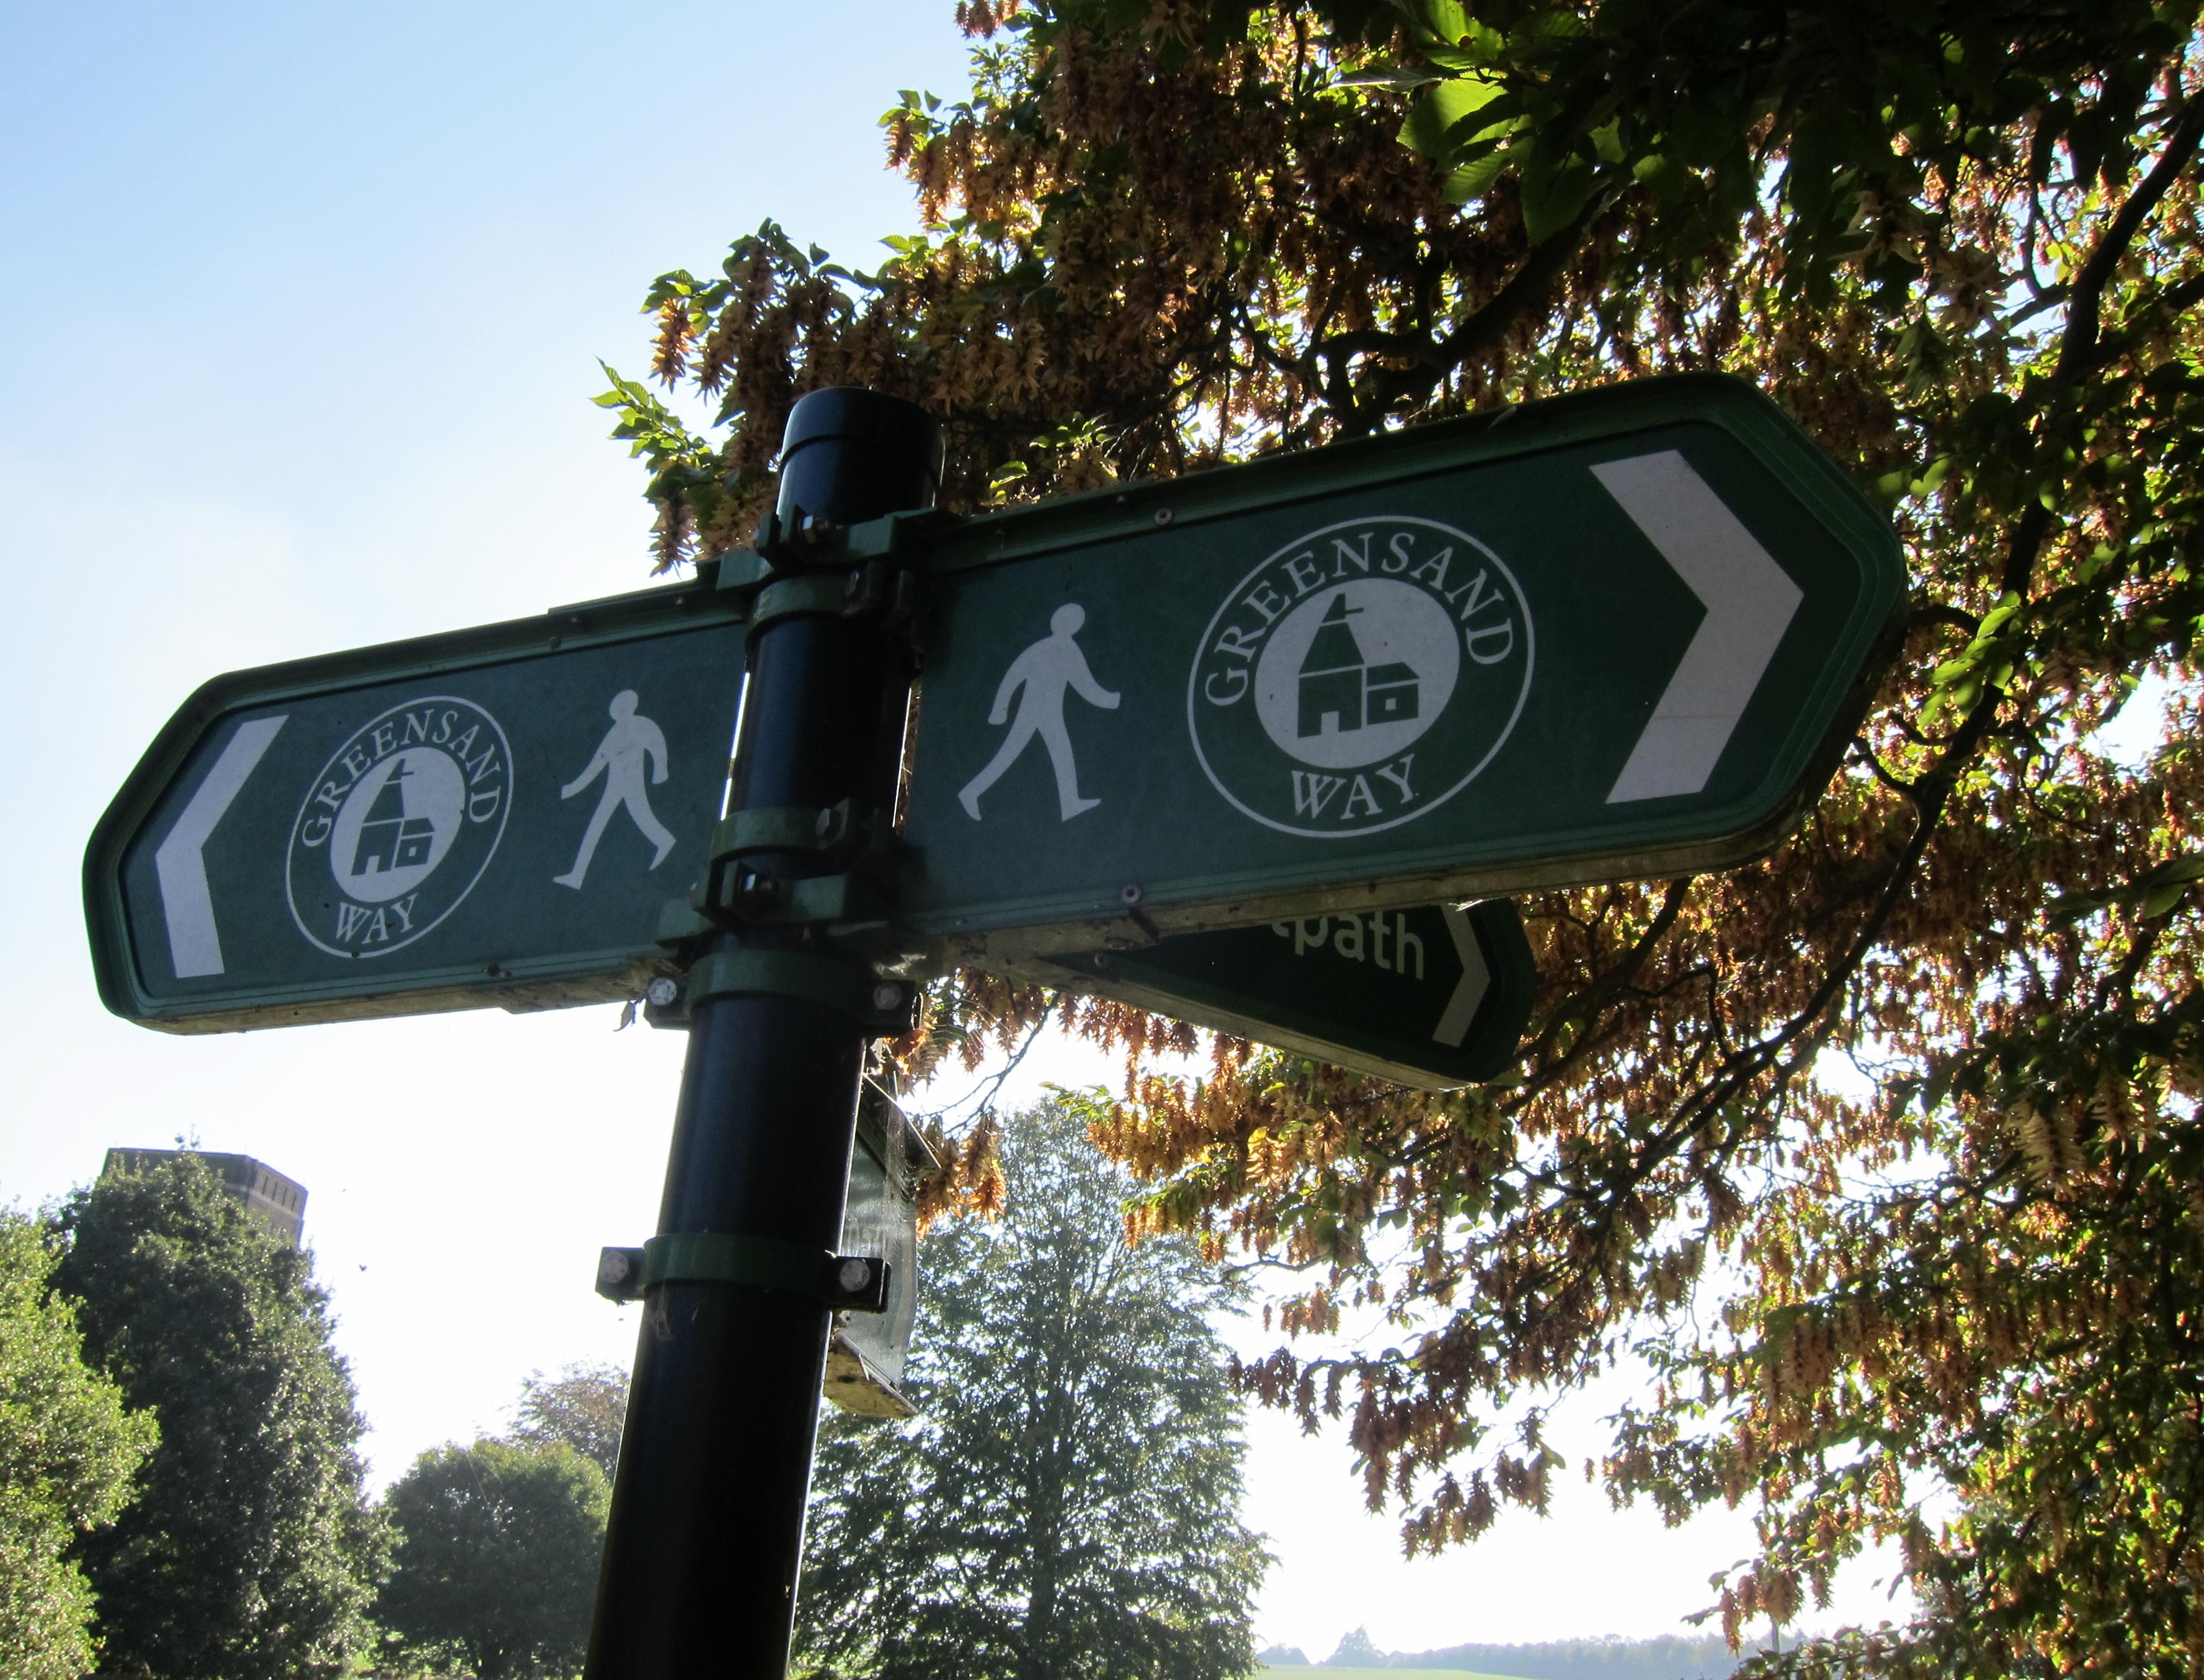 The Greensand Way is better waymarked today  than it was when we walked it many years ago.